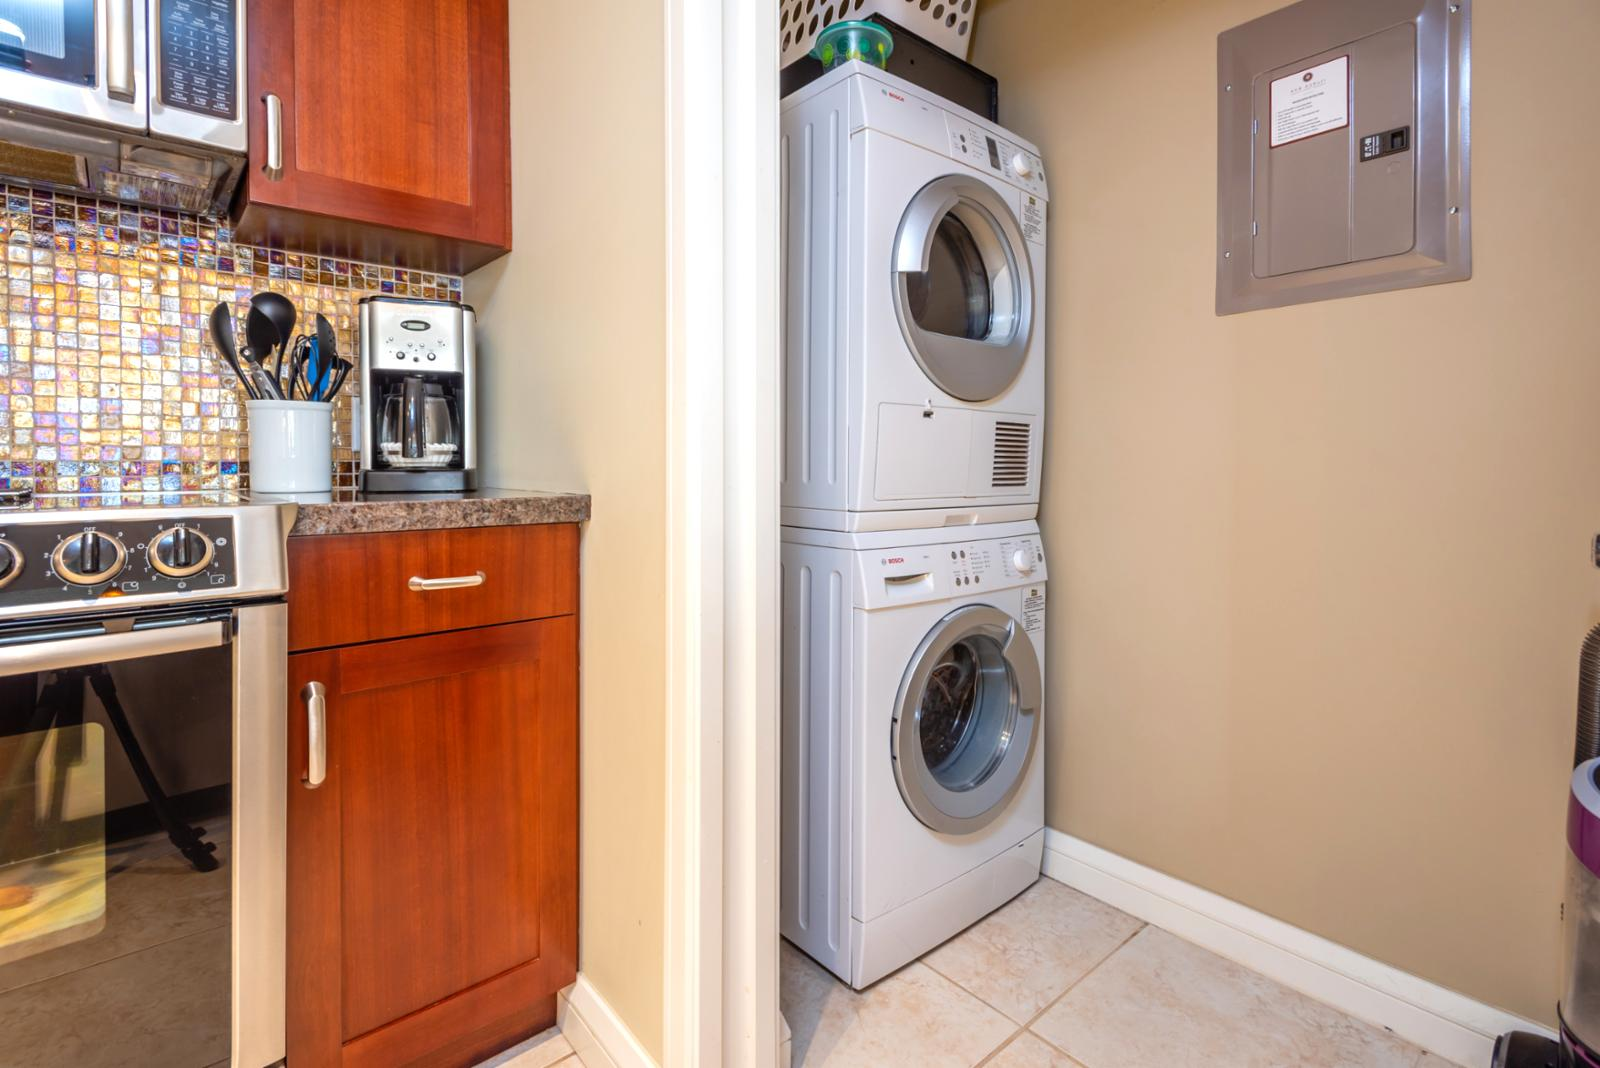 Bosch laundry appliance ready for your use!